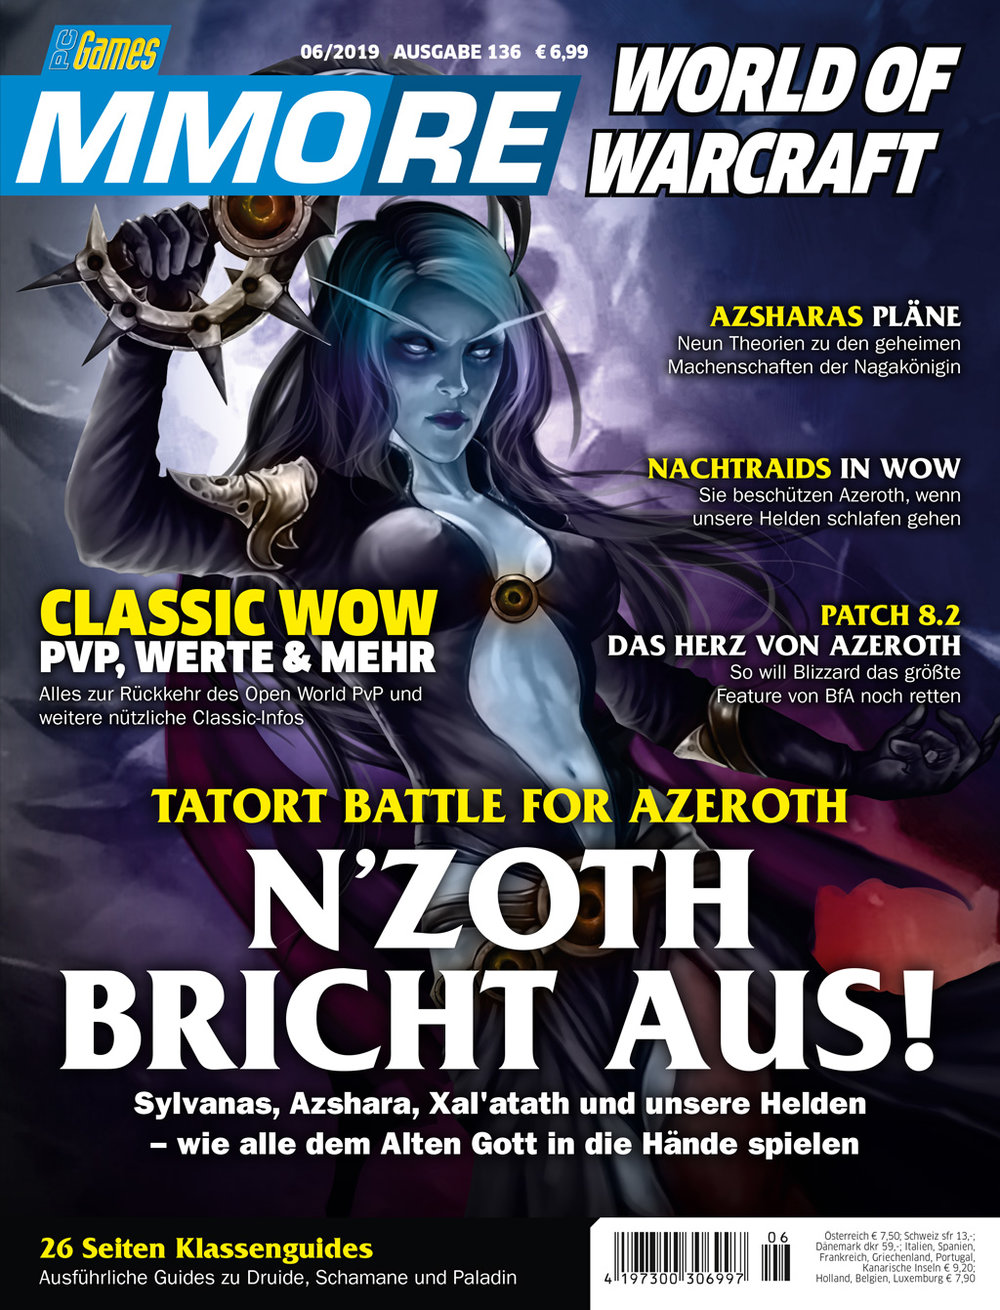 PC Games MMORE ePaper 06/2019